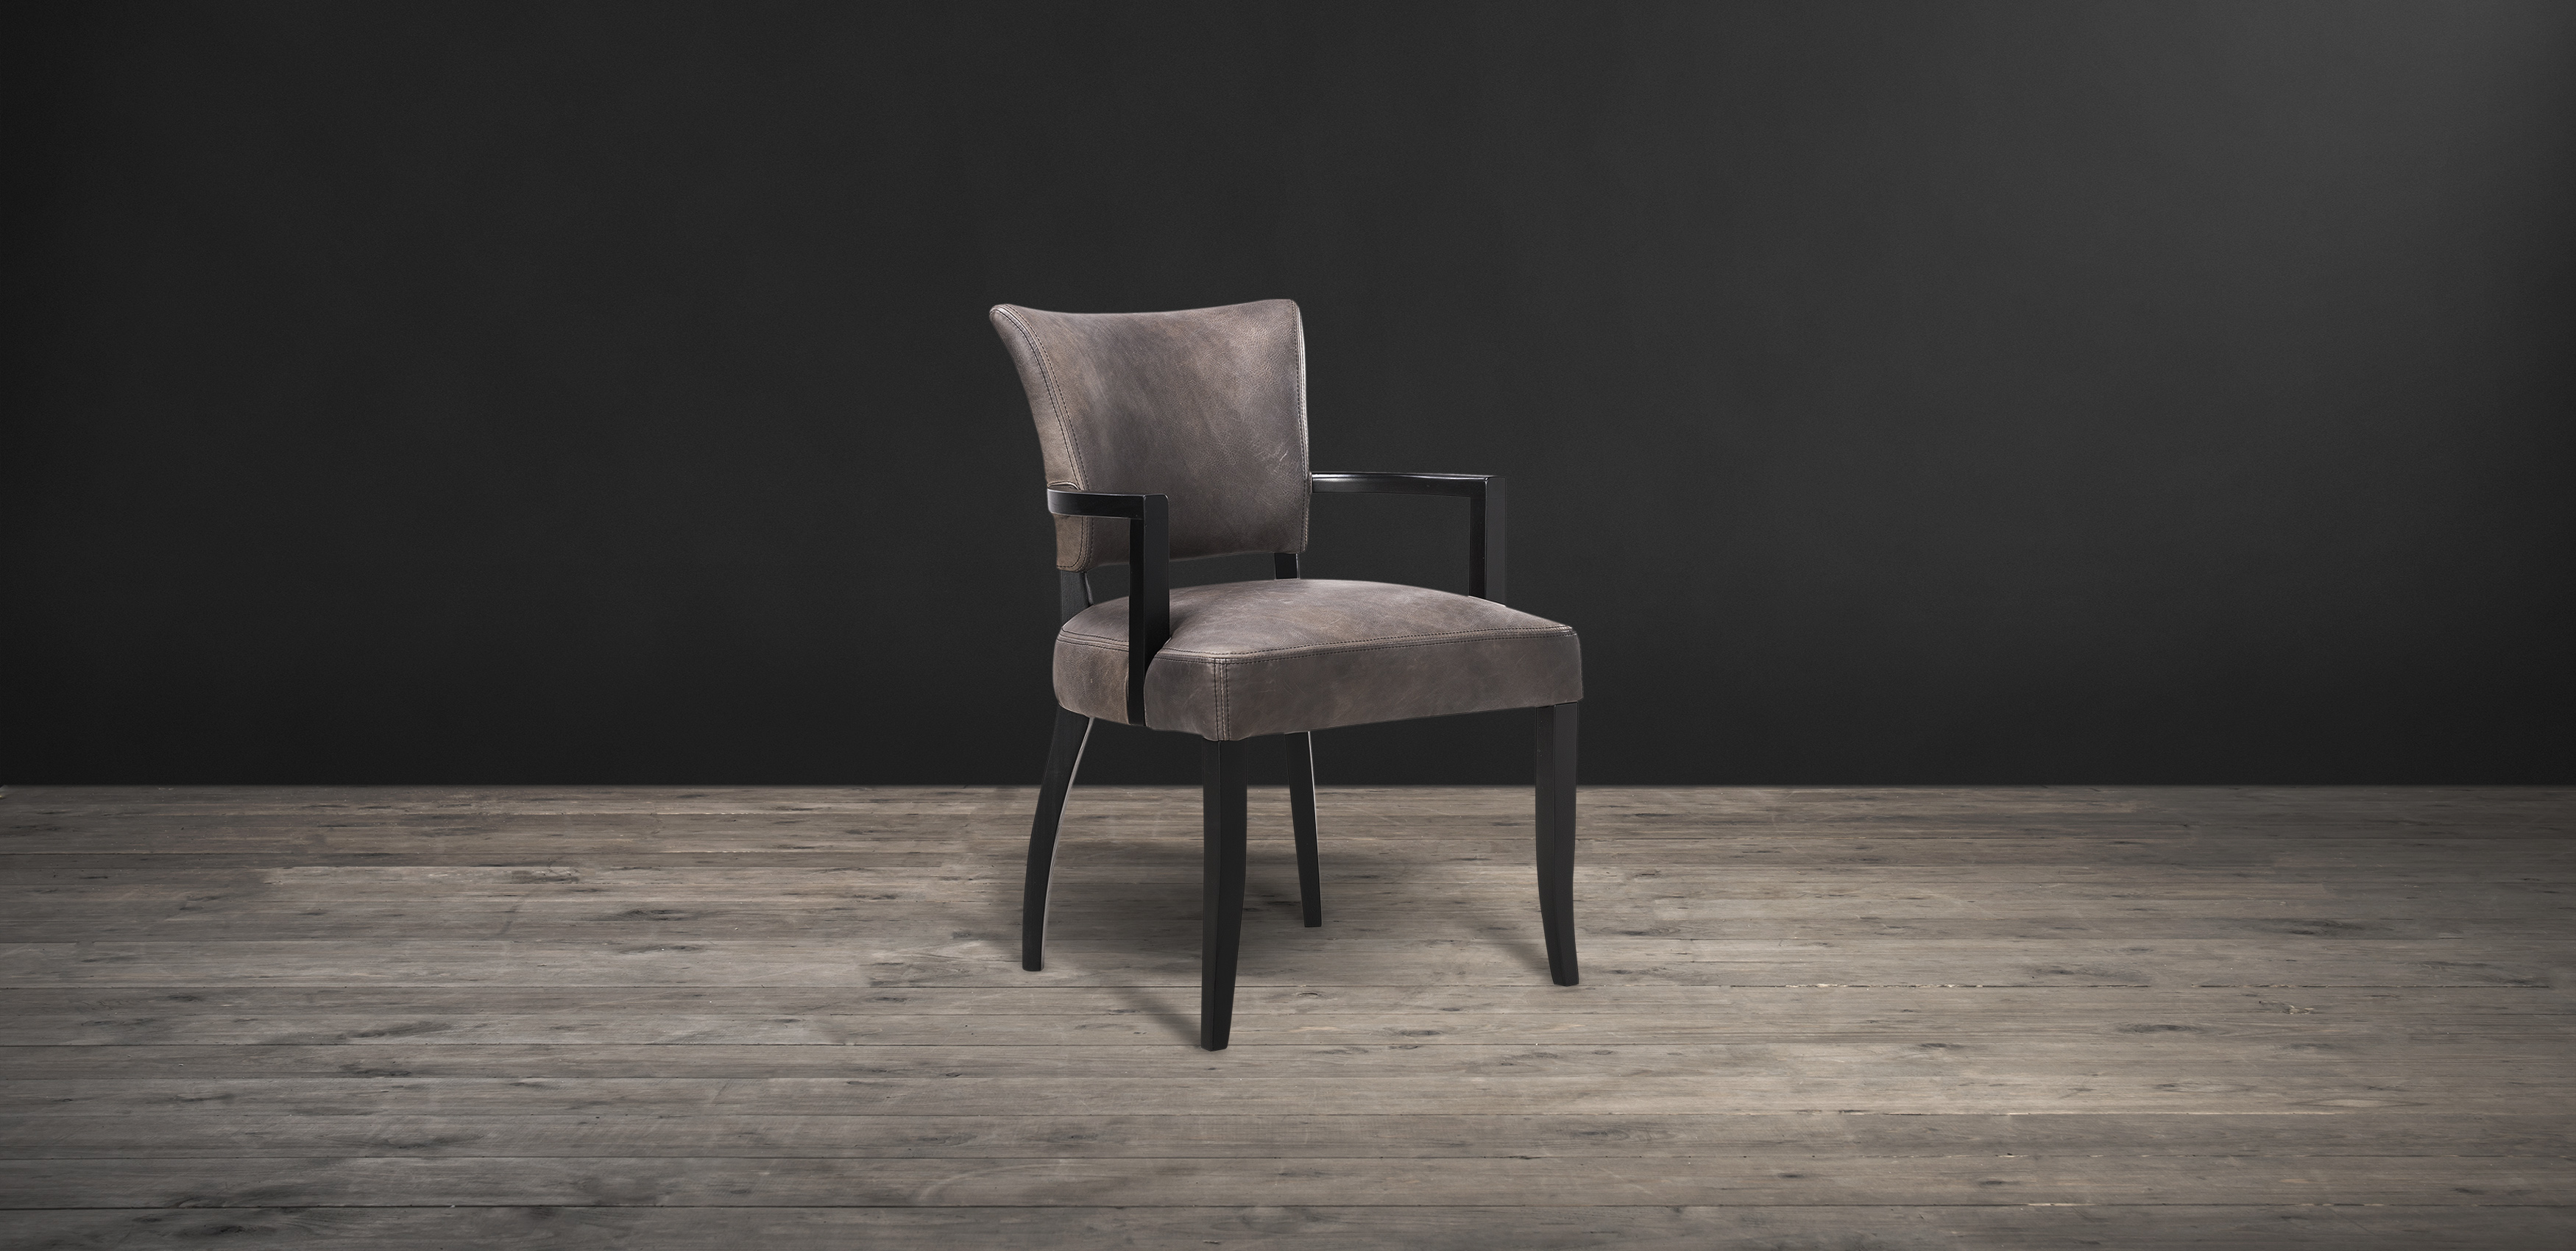 Timothy Oulton dining chair with arm in faded and degraded velvet - Mimi